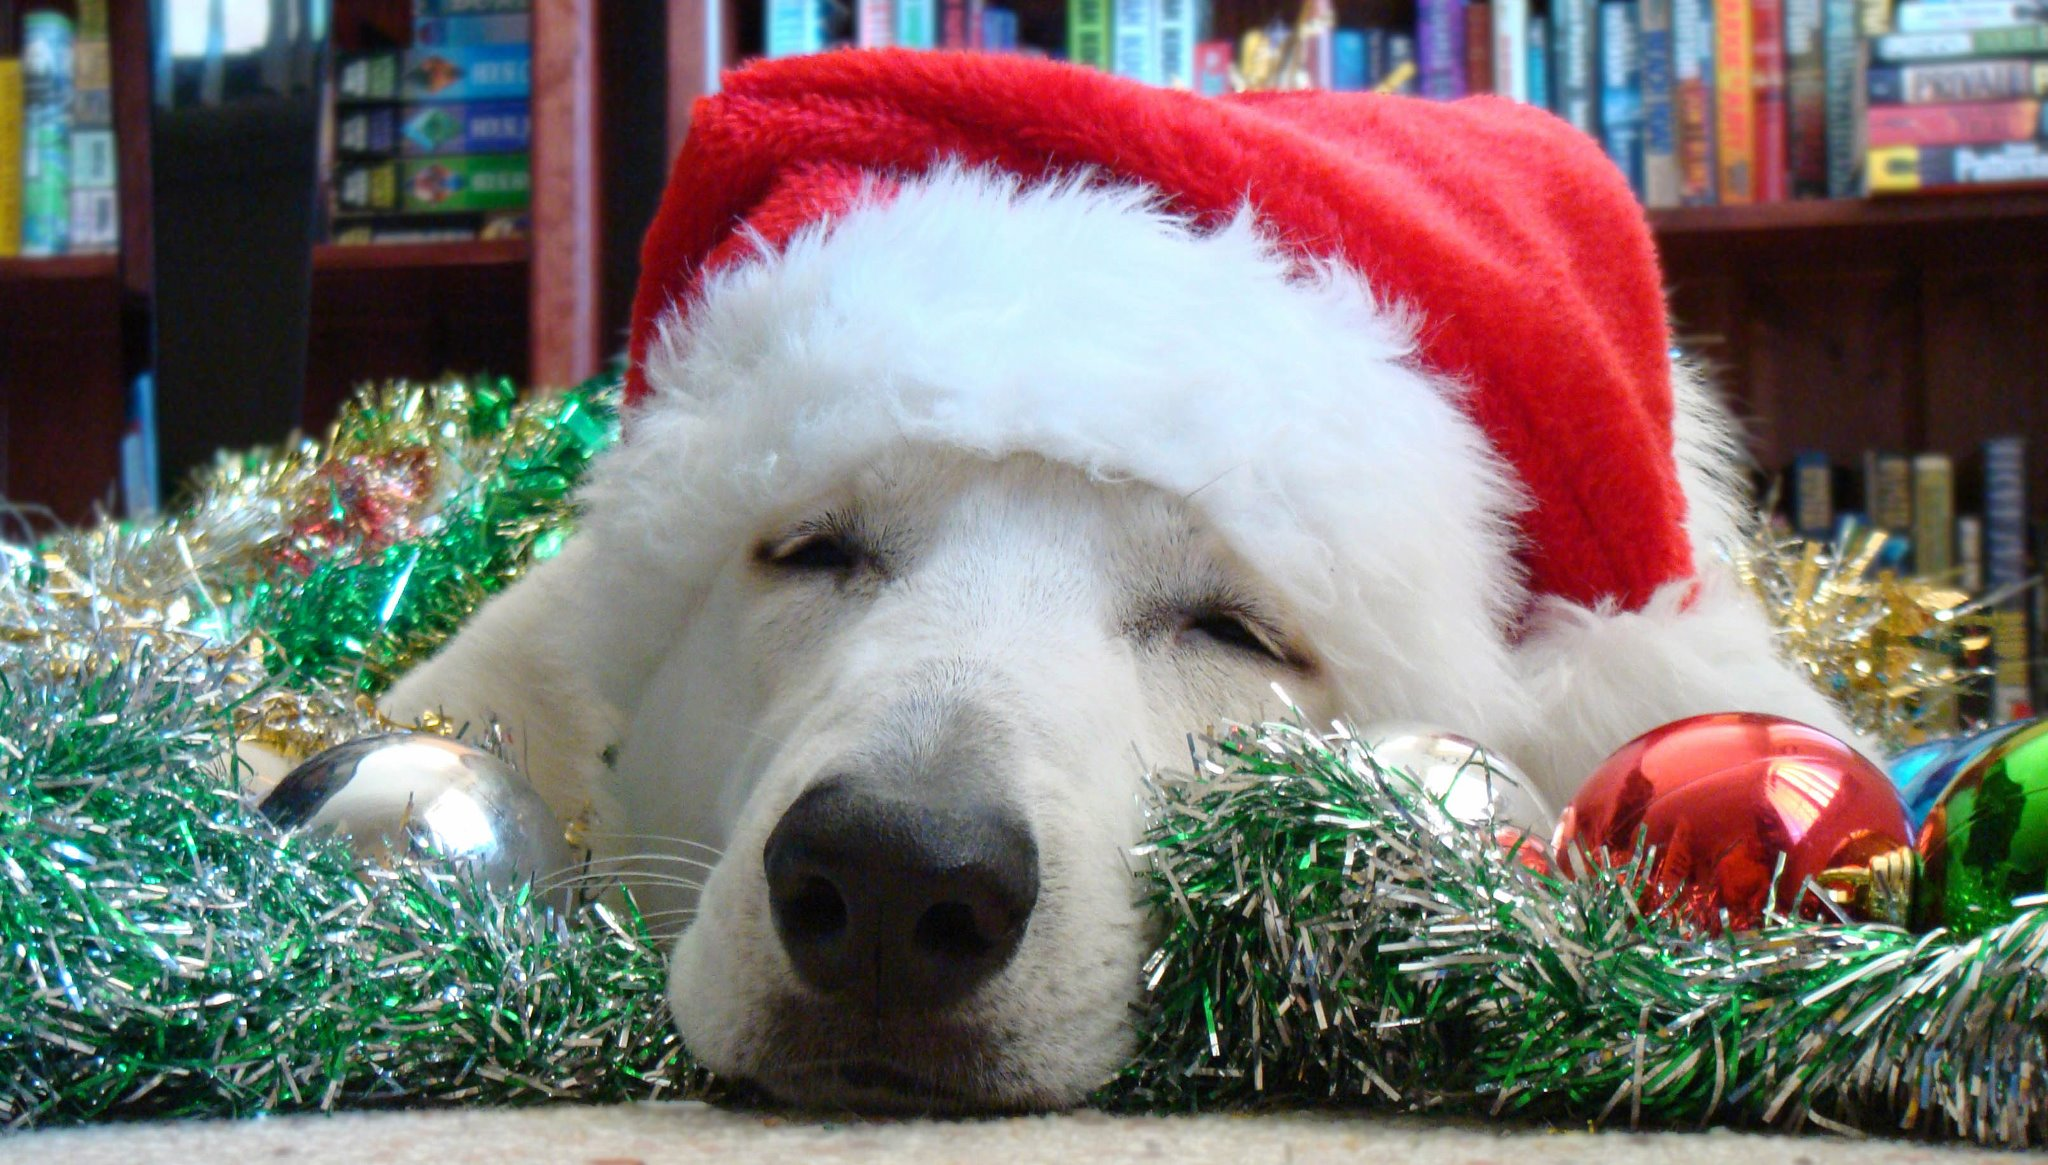 Pet-friendly pets in Christmas costumes